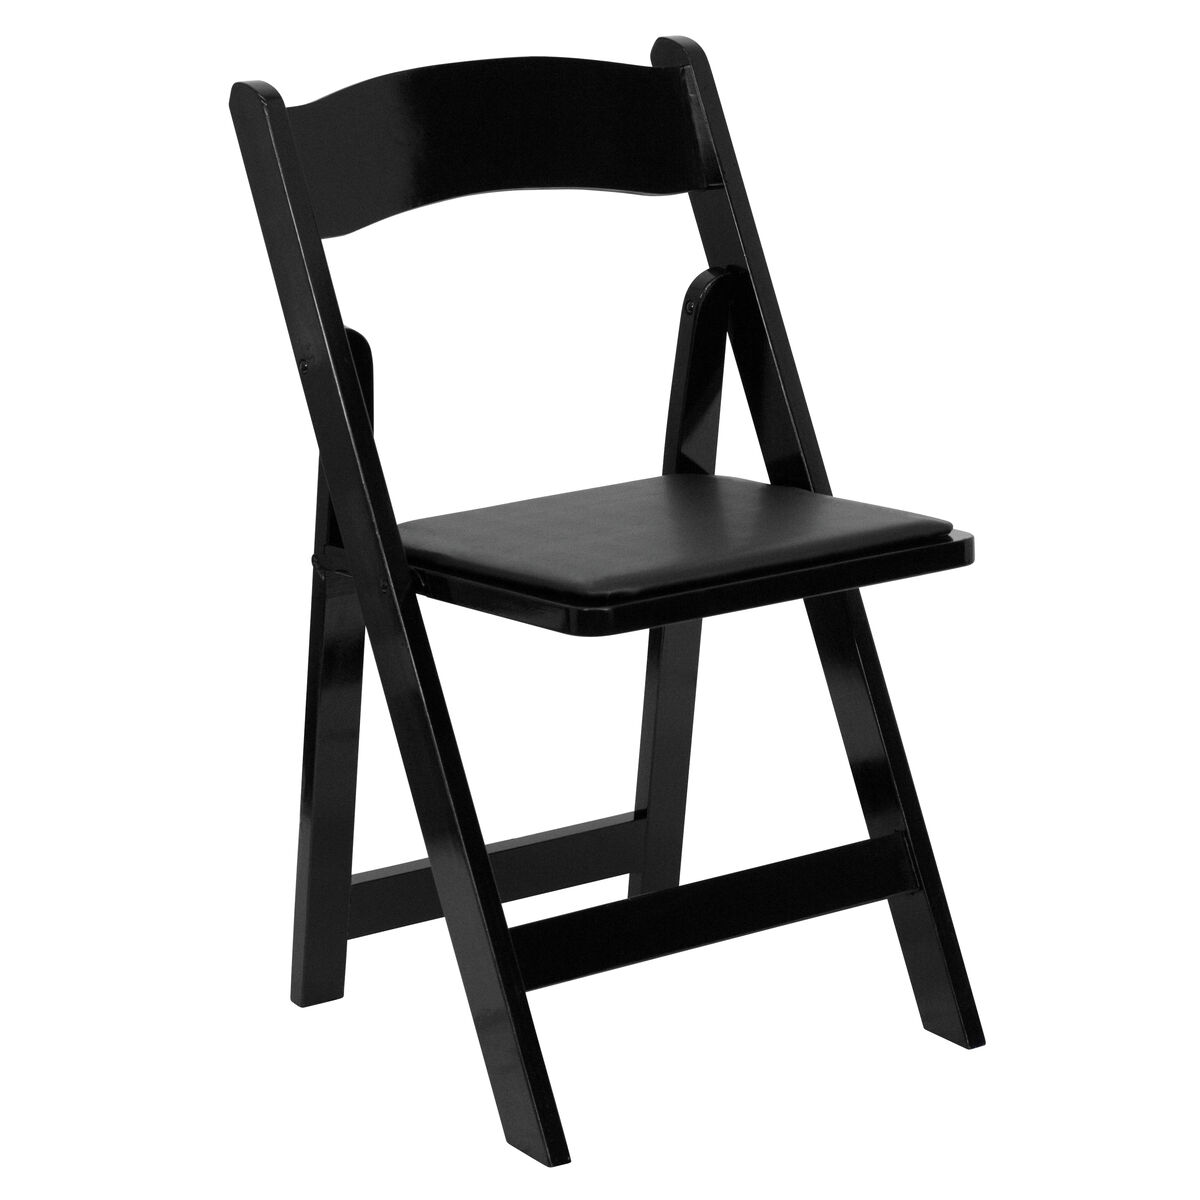 Remarkable Hercules Series Black Wood Folding Chair With Vinyl Padded Seat Caraccident5 Cool Chair Designs And Ideas Caraccident5Info